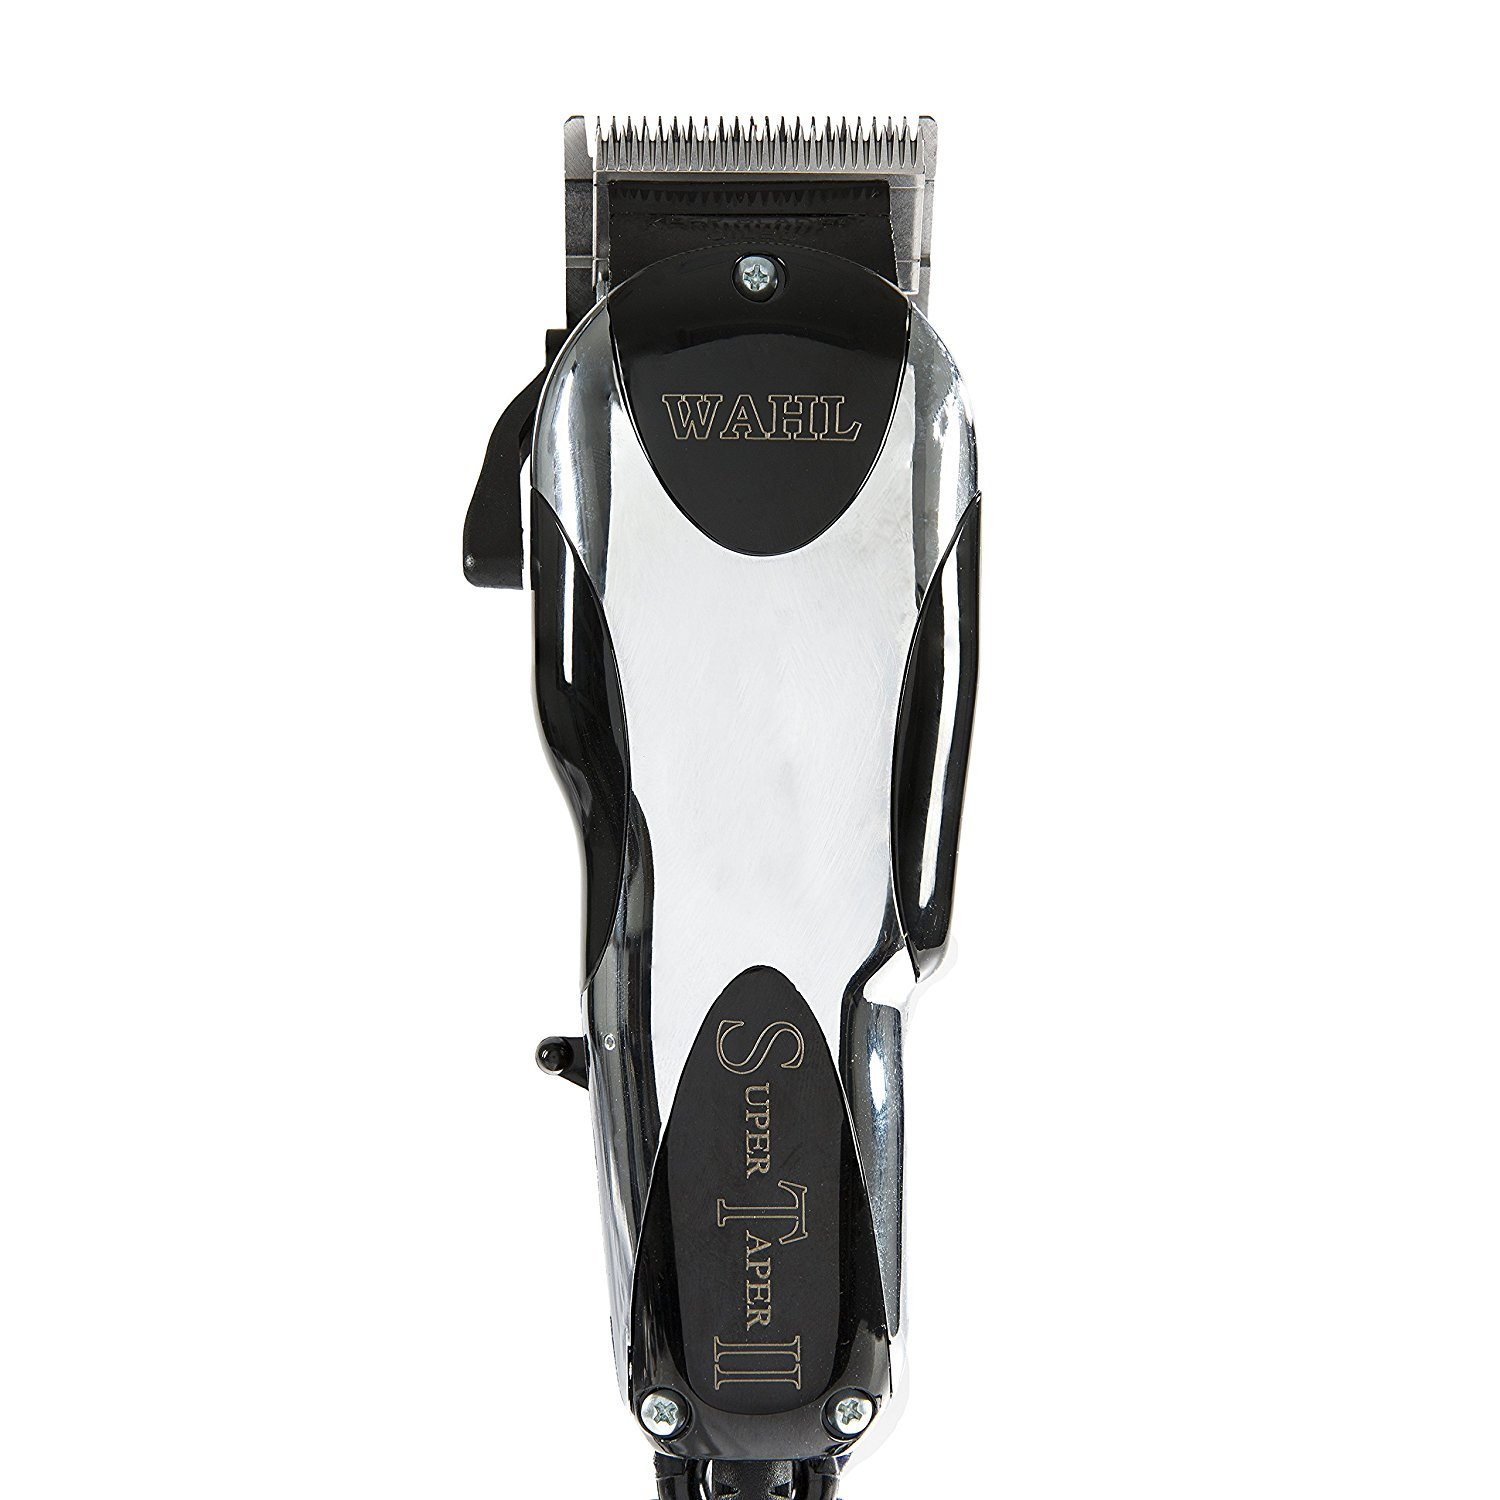 Wahl Professional Super Taper II Hair Clipper 8470-500 Ultra-Powerful Full Size Clipper V5000 Electromagnetic Motor Includes 8 Attachment Combs